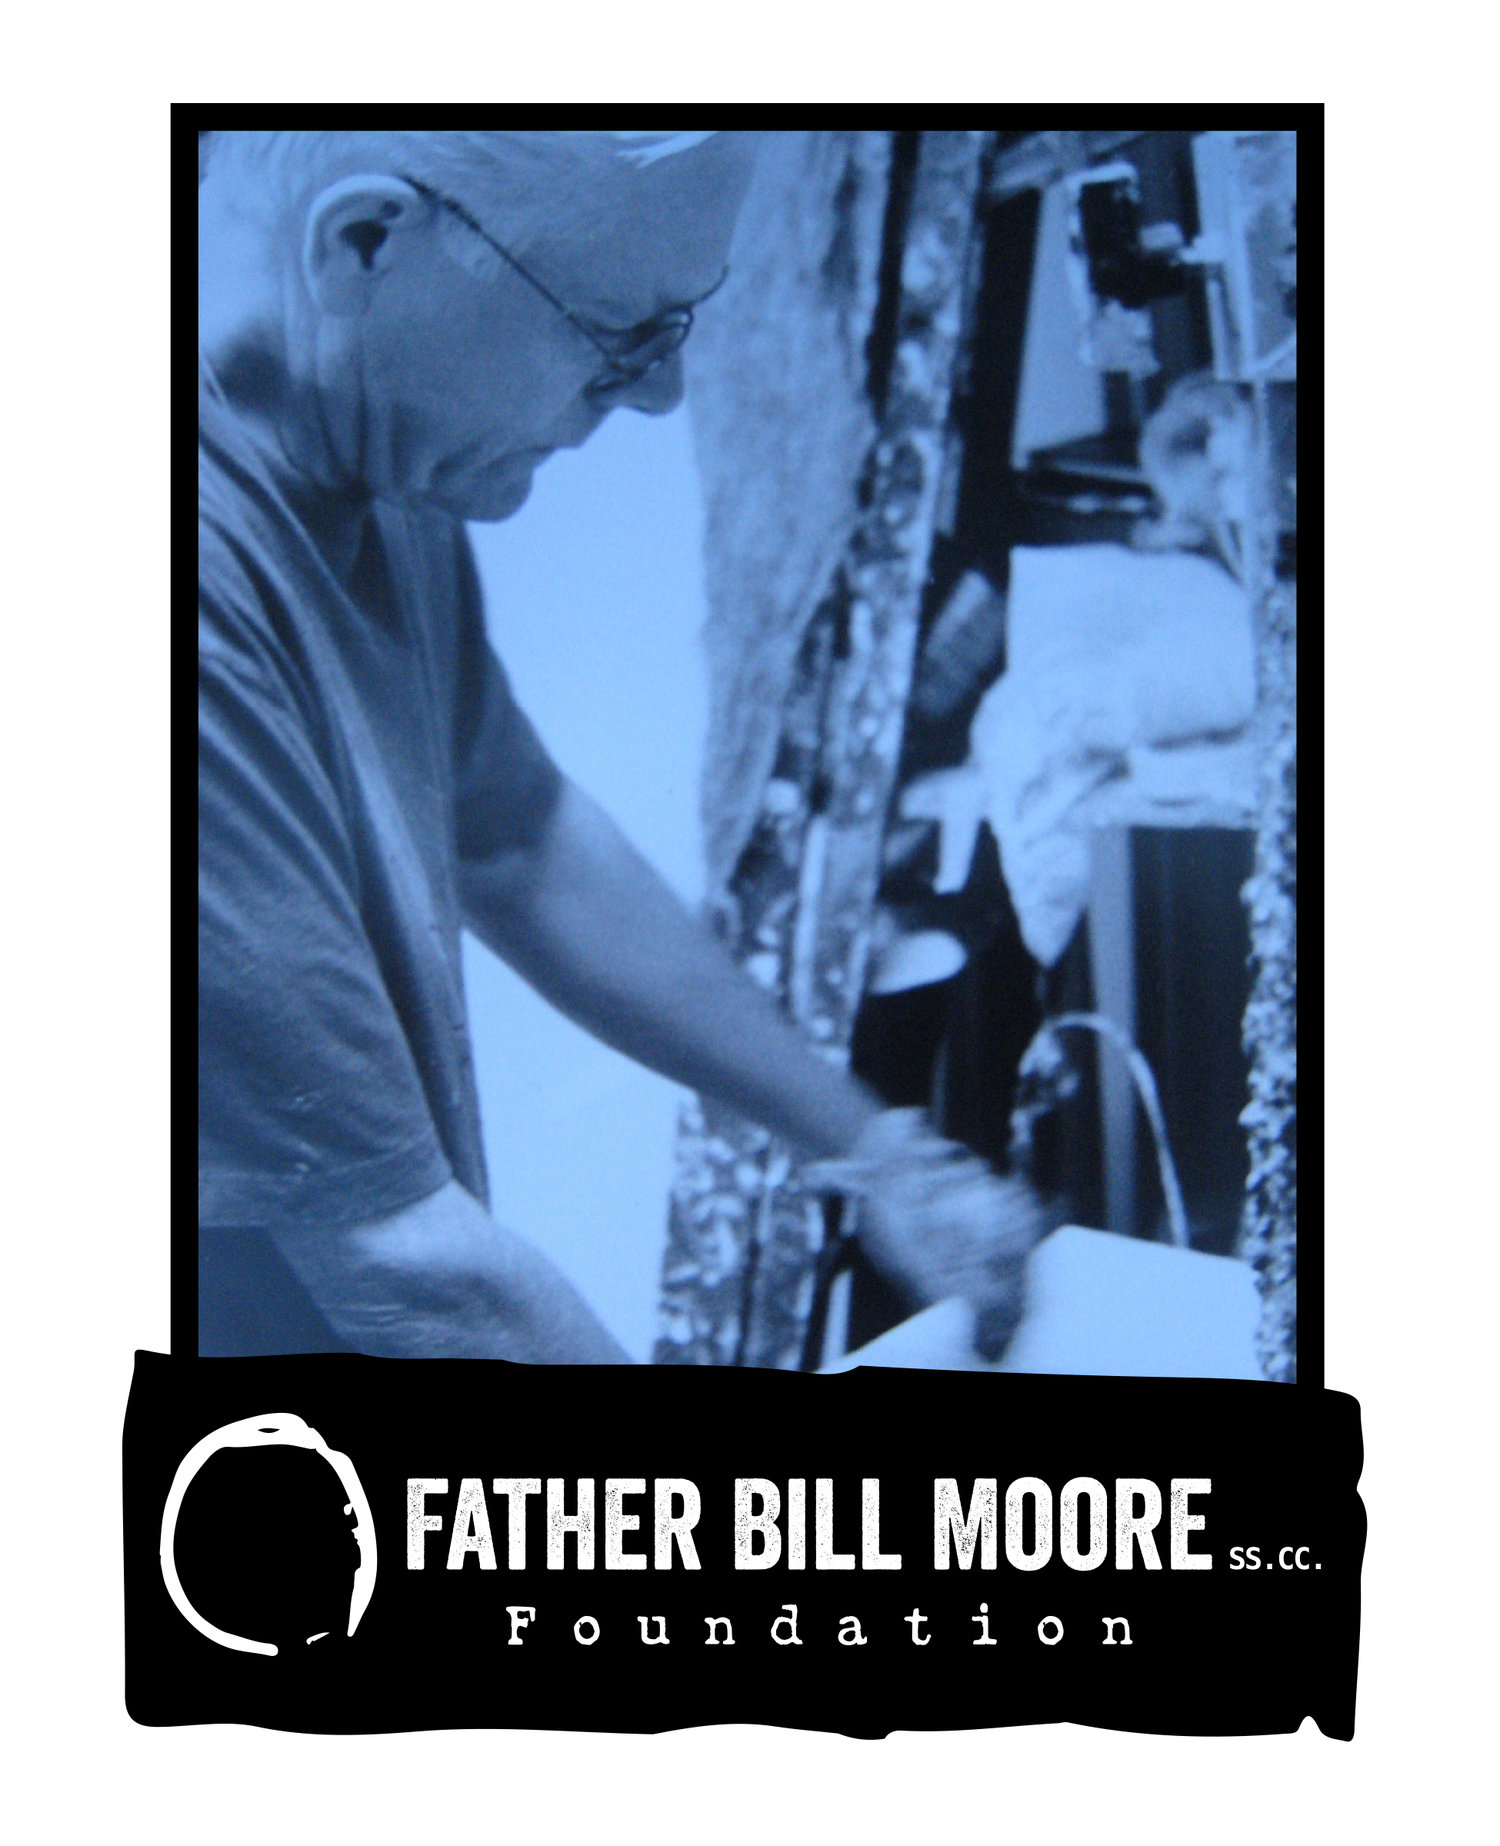 The Father Bill Moore Foundation For the Arts